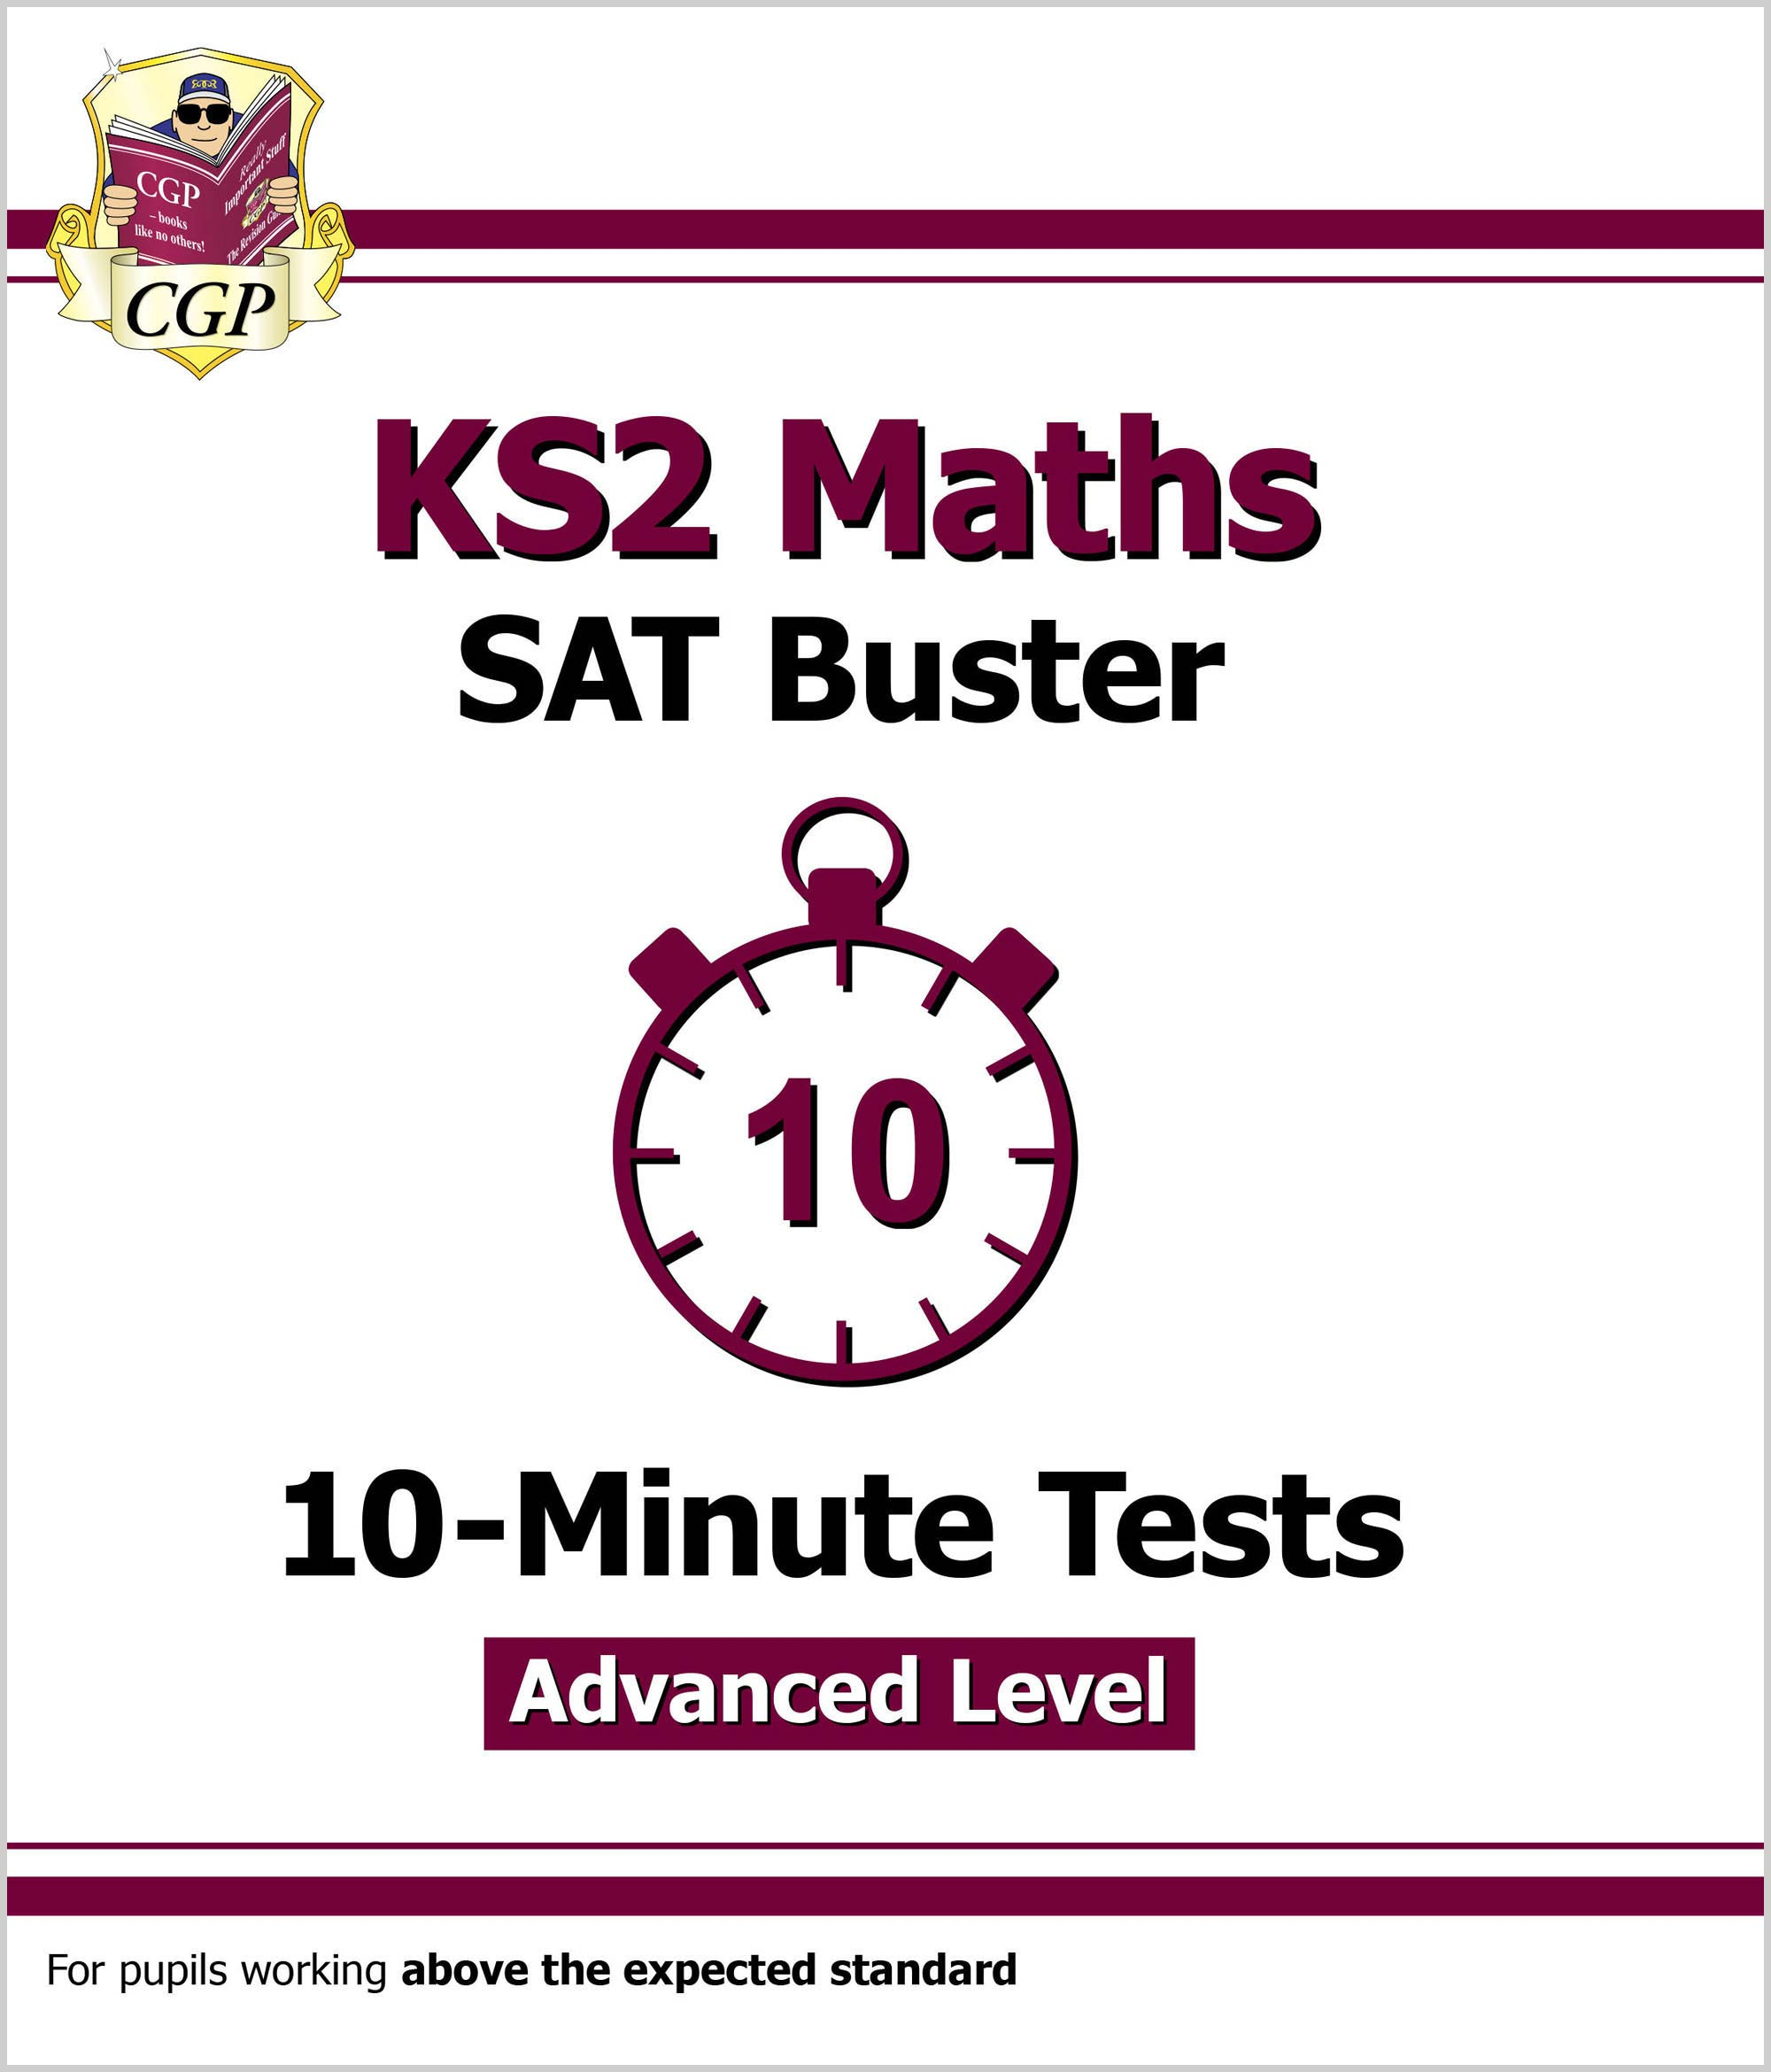 MLHXP21DK - KS2 Maths Targeted SAT Buster 10-Minute Tests - Advanced (for the 2019 tests)